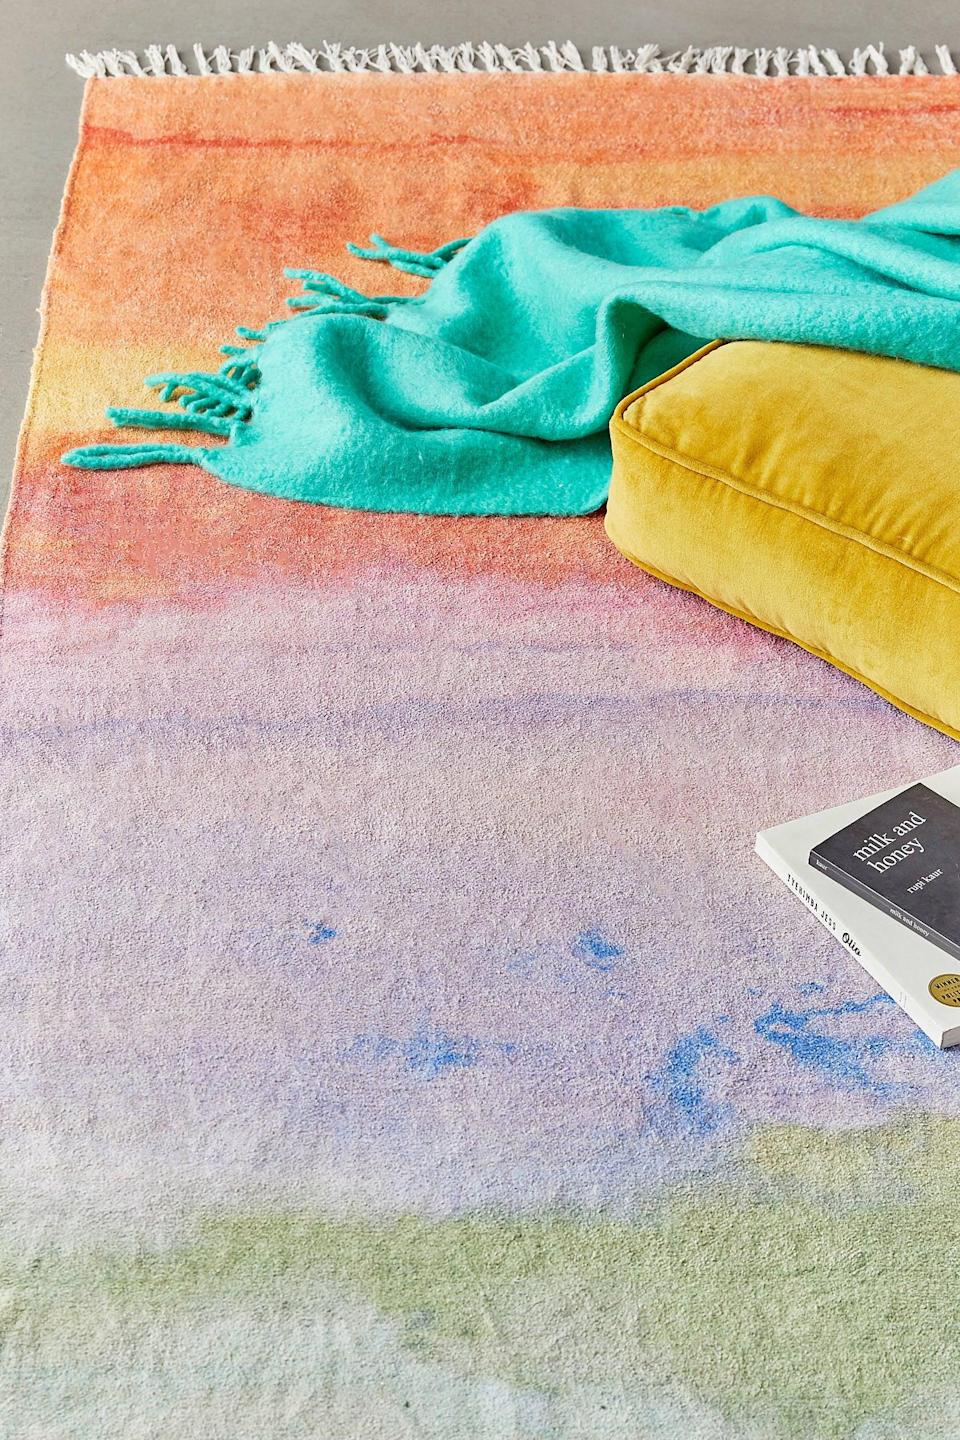 """<p>Add some color to your room with this <a href=""""https://www.popsugar.com/buy/Watercolor-Sunset-Chenille-Rug-546155?p_name=Watercolor%20Sunset%20Chenille%20Rug&retailer=urbanoutfitters.com&pid=546155&price=169&evar1=casa%3Aus&evar9=45186448&evar98=https%3A%2F%2Fwww.popsugar.com%2Fhome%2Fphoto-gallery%2F45186448%2Fimage%2F47349992%2FWatercolor-Sunset-Chenille-Rug&list1=shopping%2Curban%20outfitters%2Chome%20decor%2Csmall%20space%20living%2Cdecor%20shopping&prop13=mobile&pdata=1"""" class=""""link rapid-noclick-resp"""" rel=""""nofollow noopener"""" target=""""_blank"""" data-ylk=""""slk:Watercolor Sunset Chenille Rug"""">Watercolor Sunset Chenille Rug</a> ($169, originally $189).</p>"""